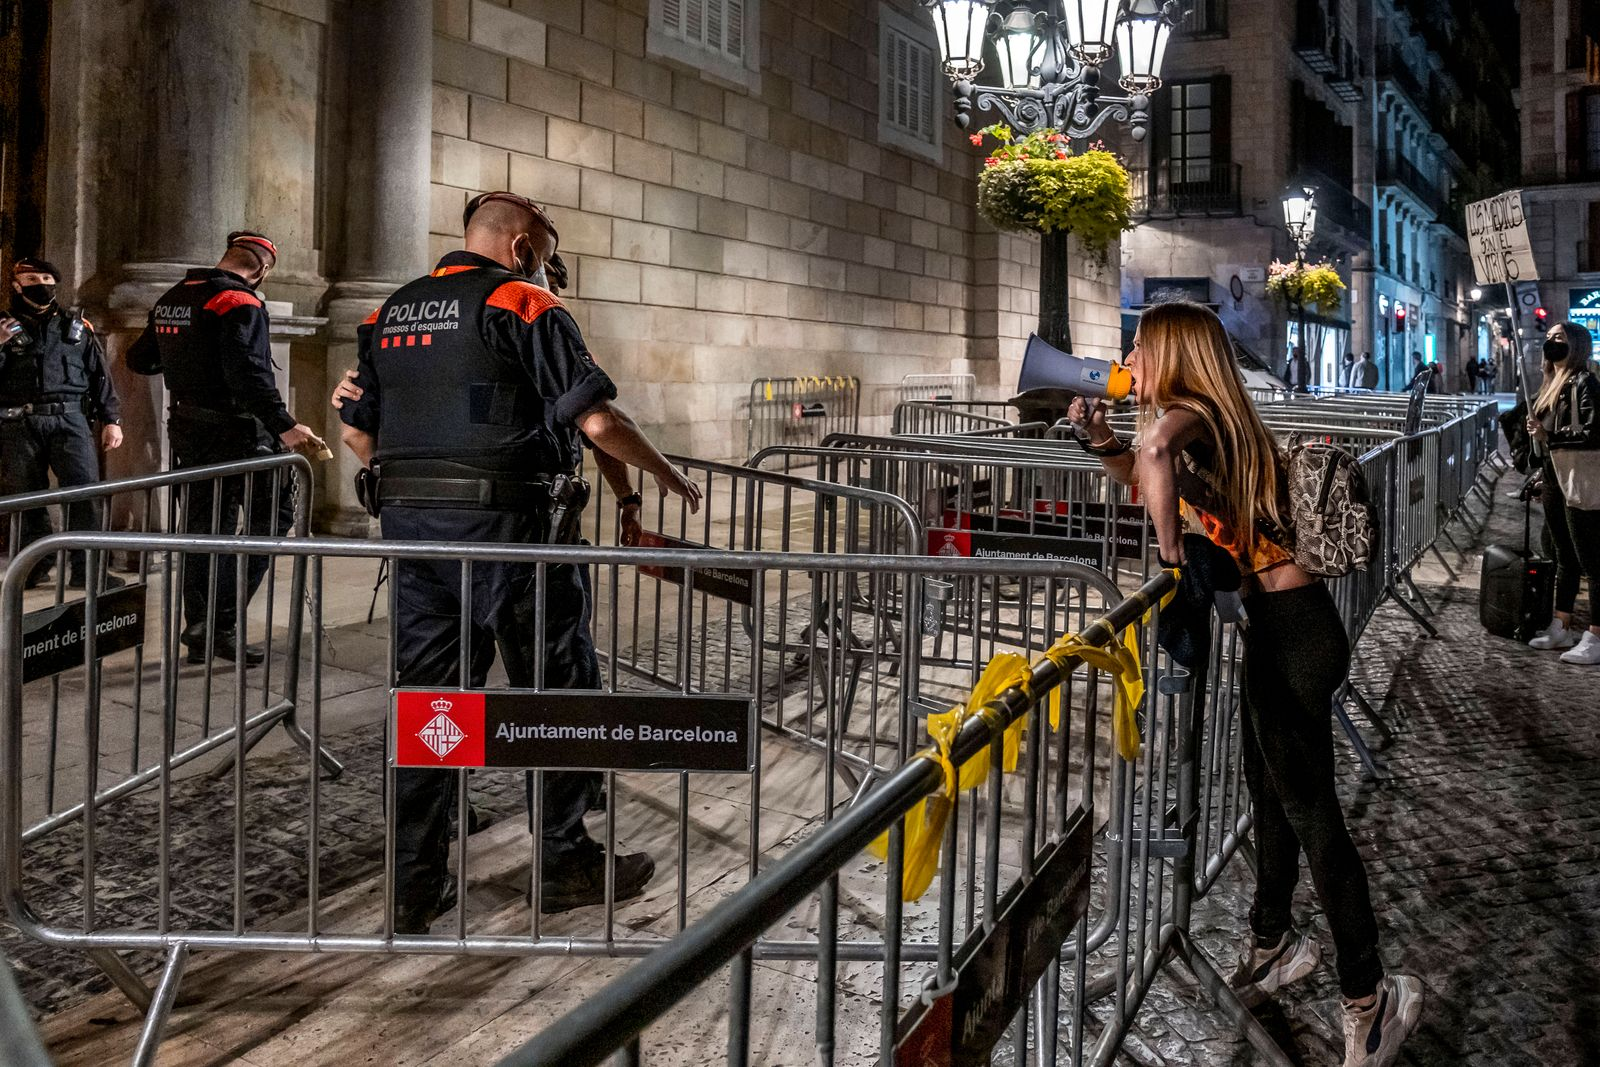 October 26, 2020, Barcelona, Spain: A Covid denier is seen berating the Mossos d esquadra police officers at the door o